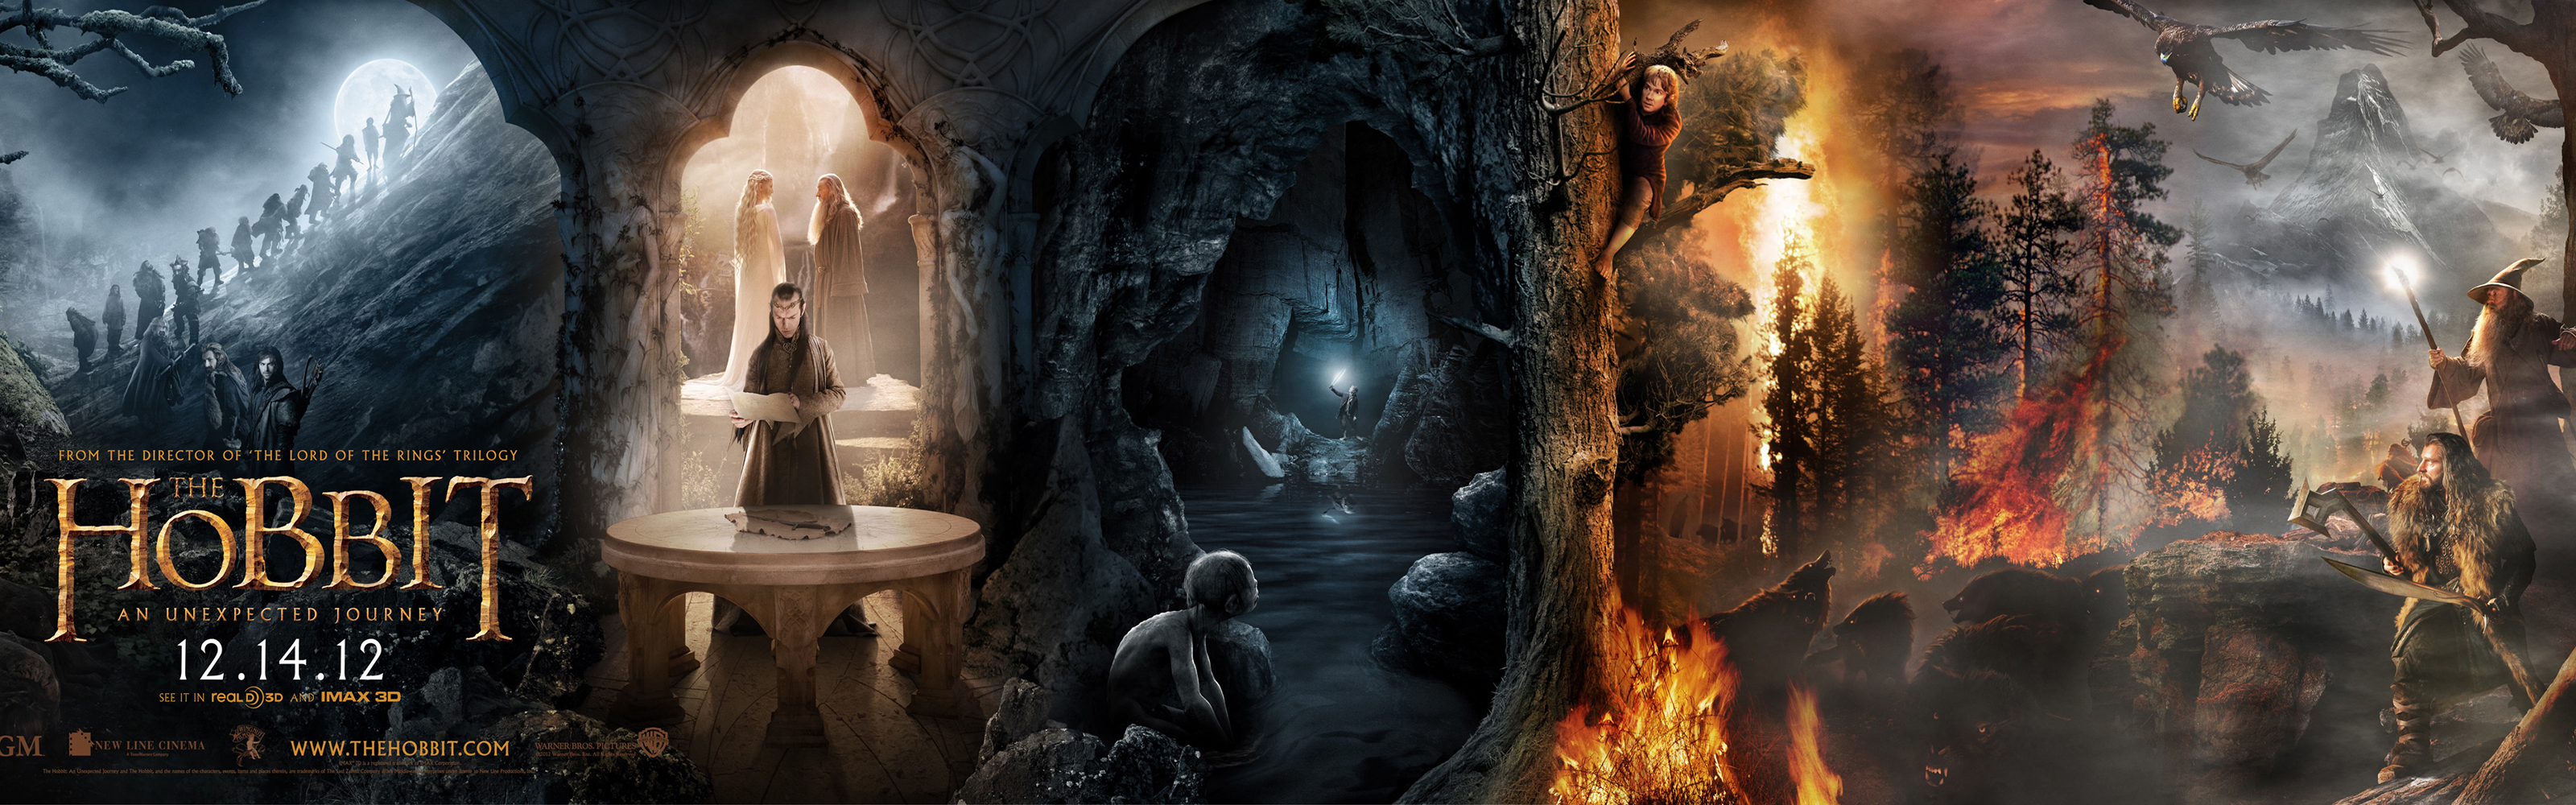 the hobbit themes for windows 8 hd wallpapers